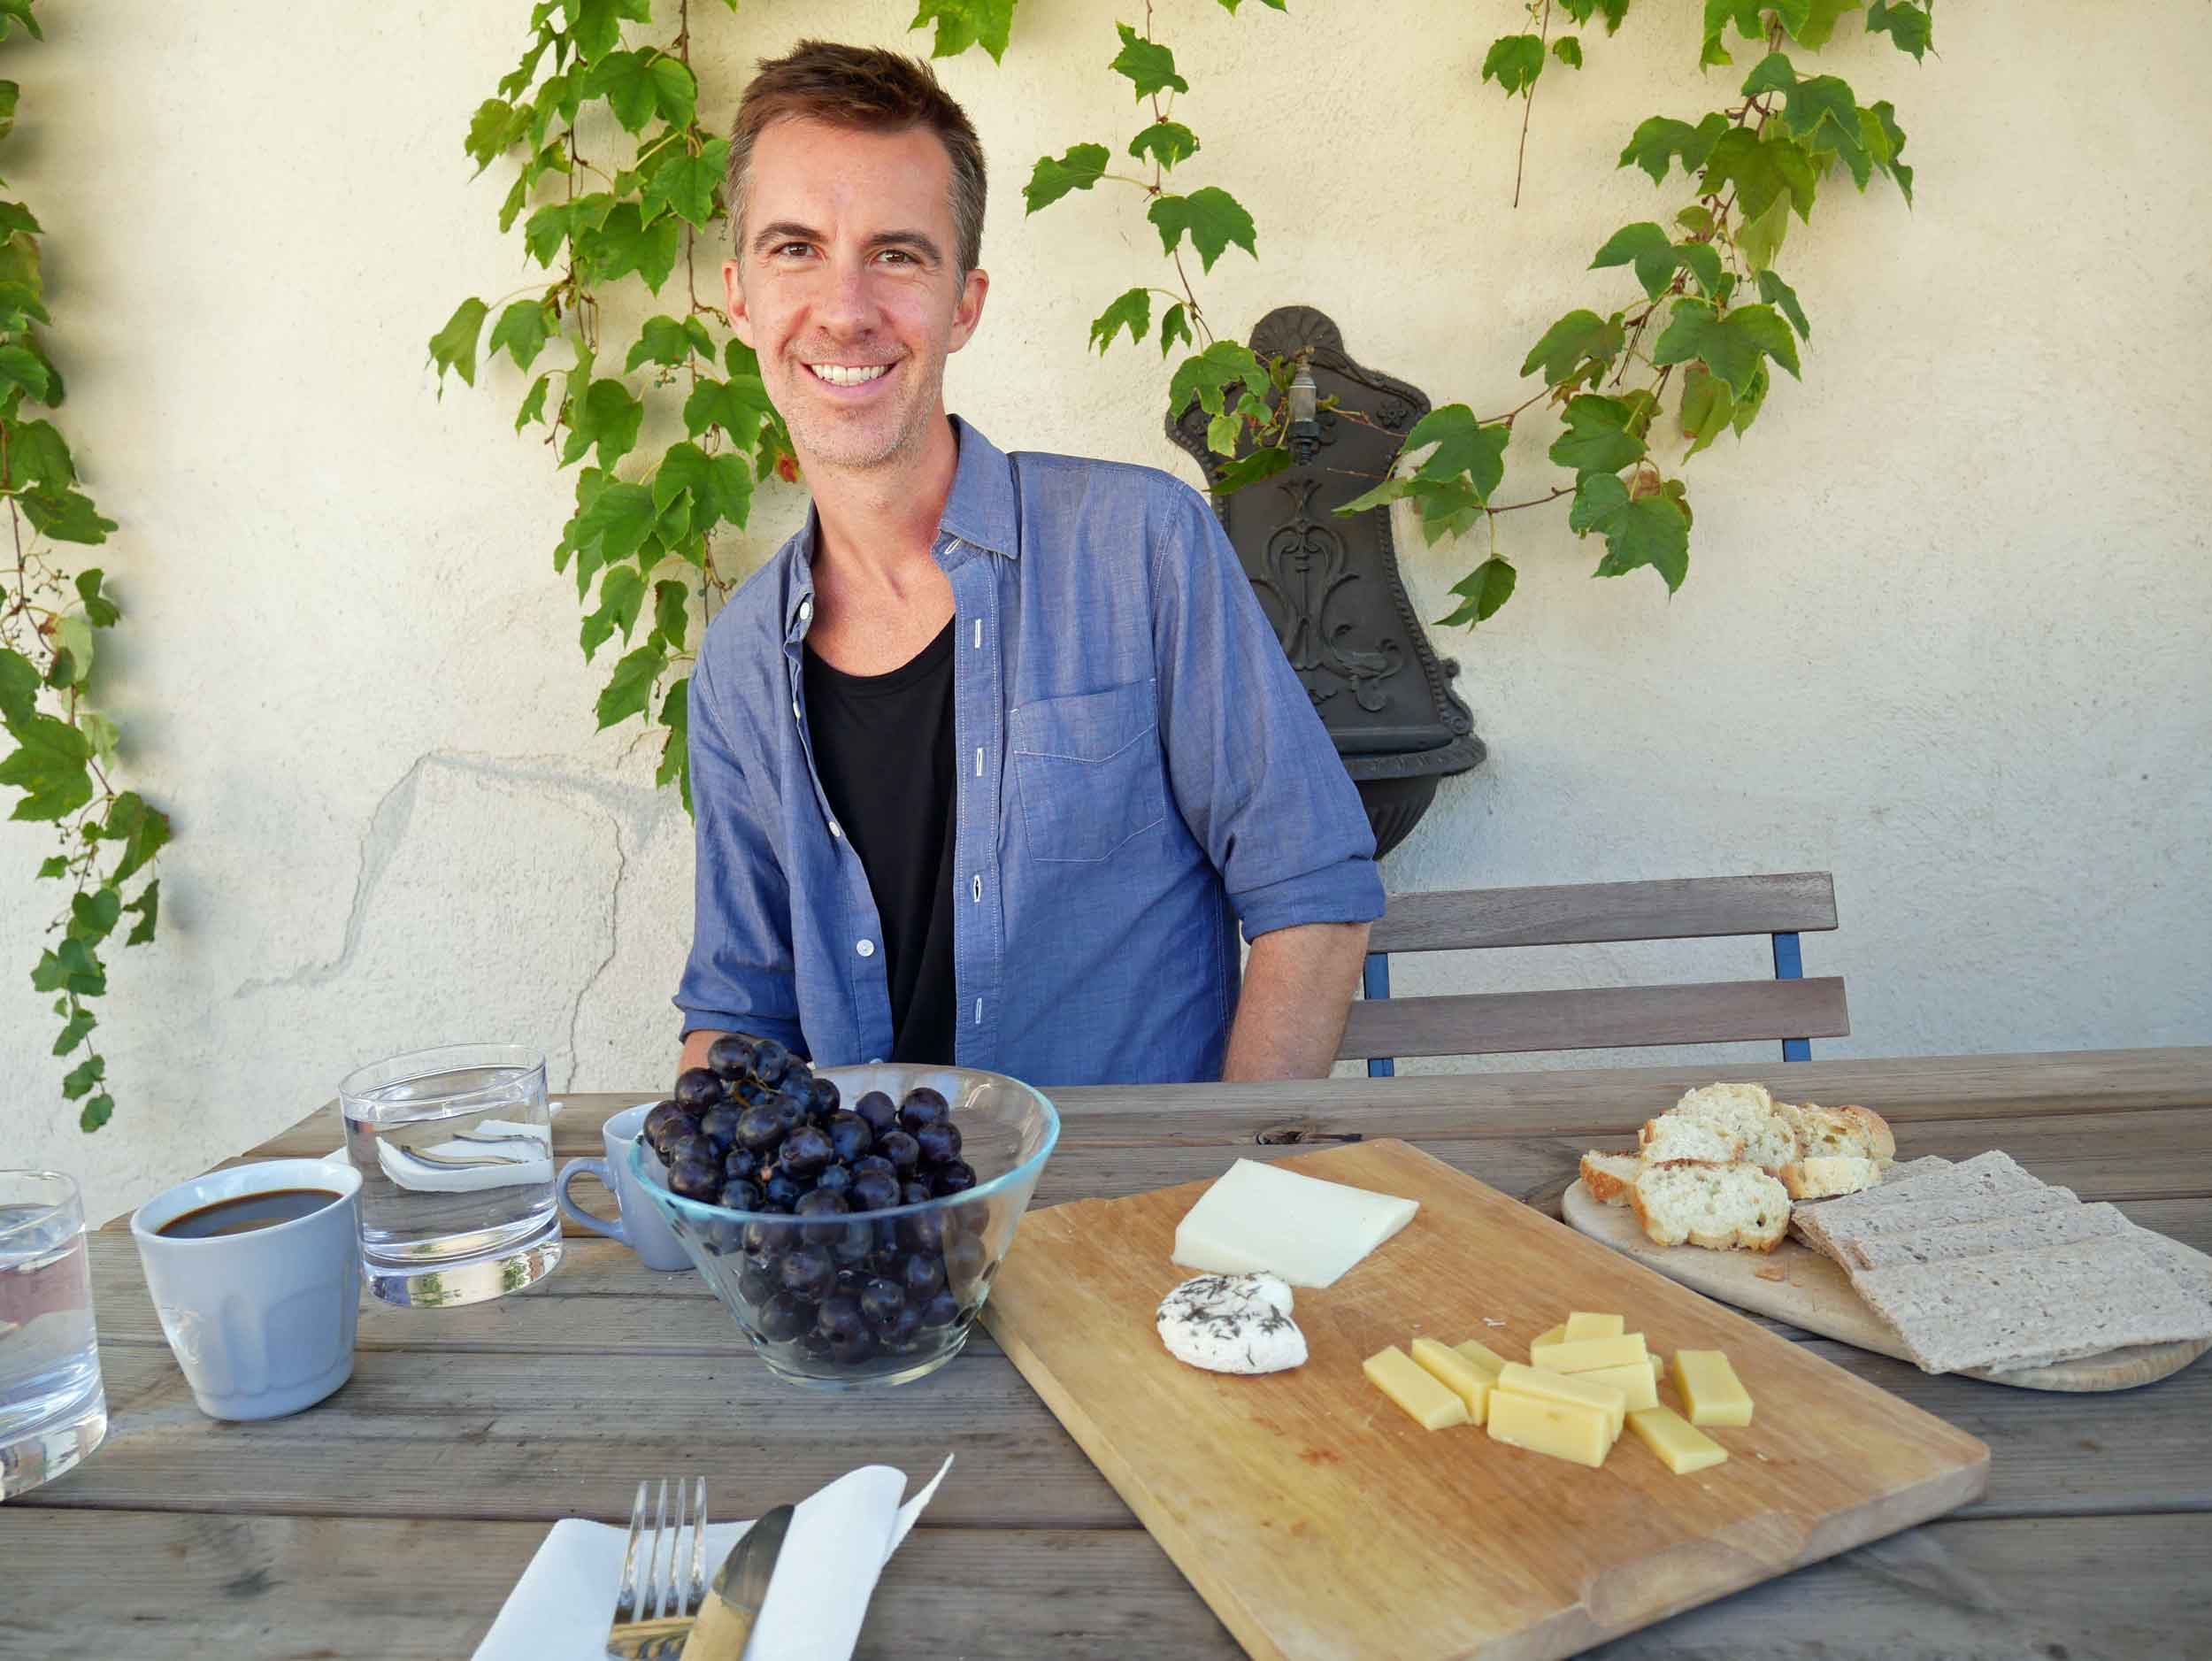 Ah, the beauty of a simple snack of local cheese and fresh grapes.